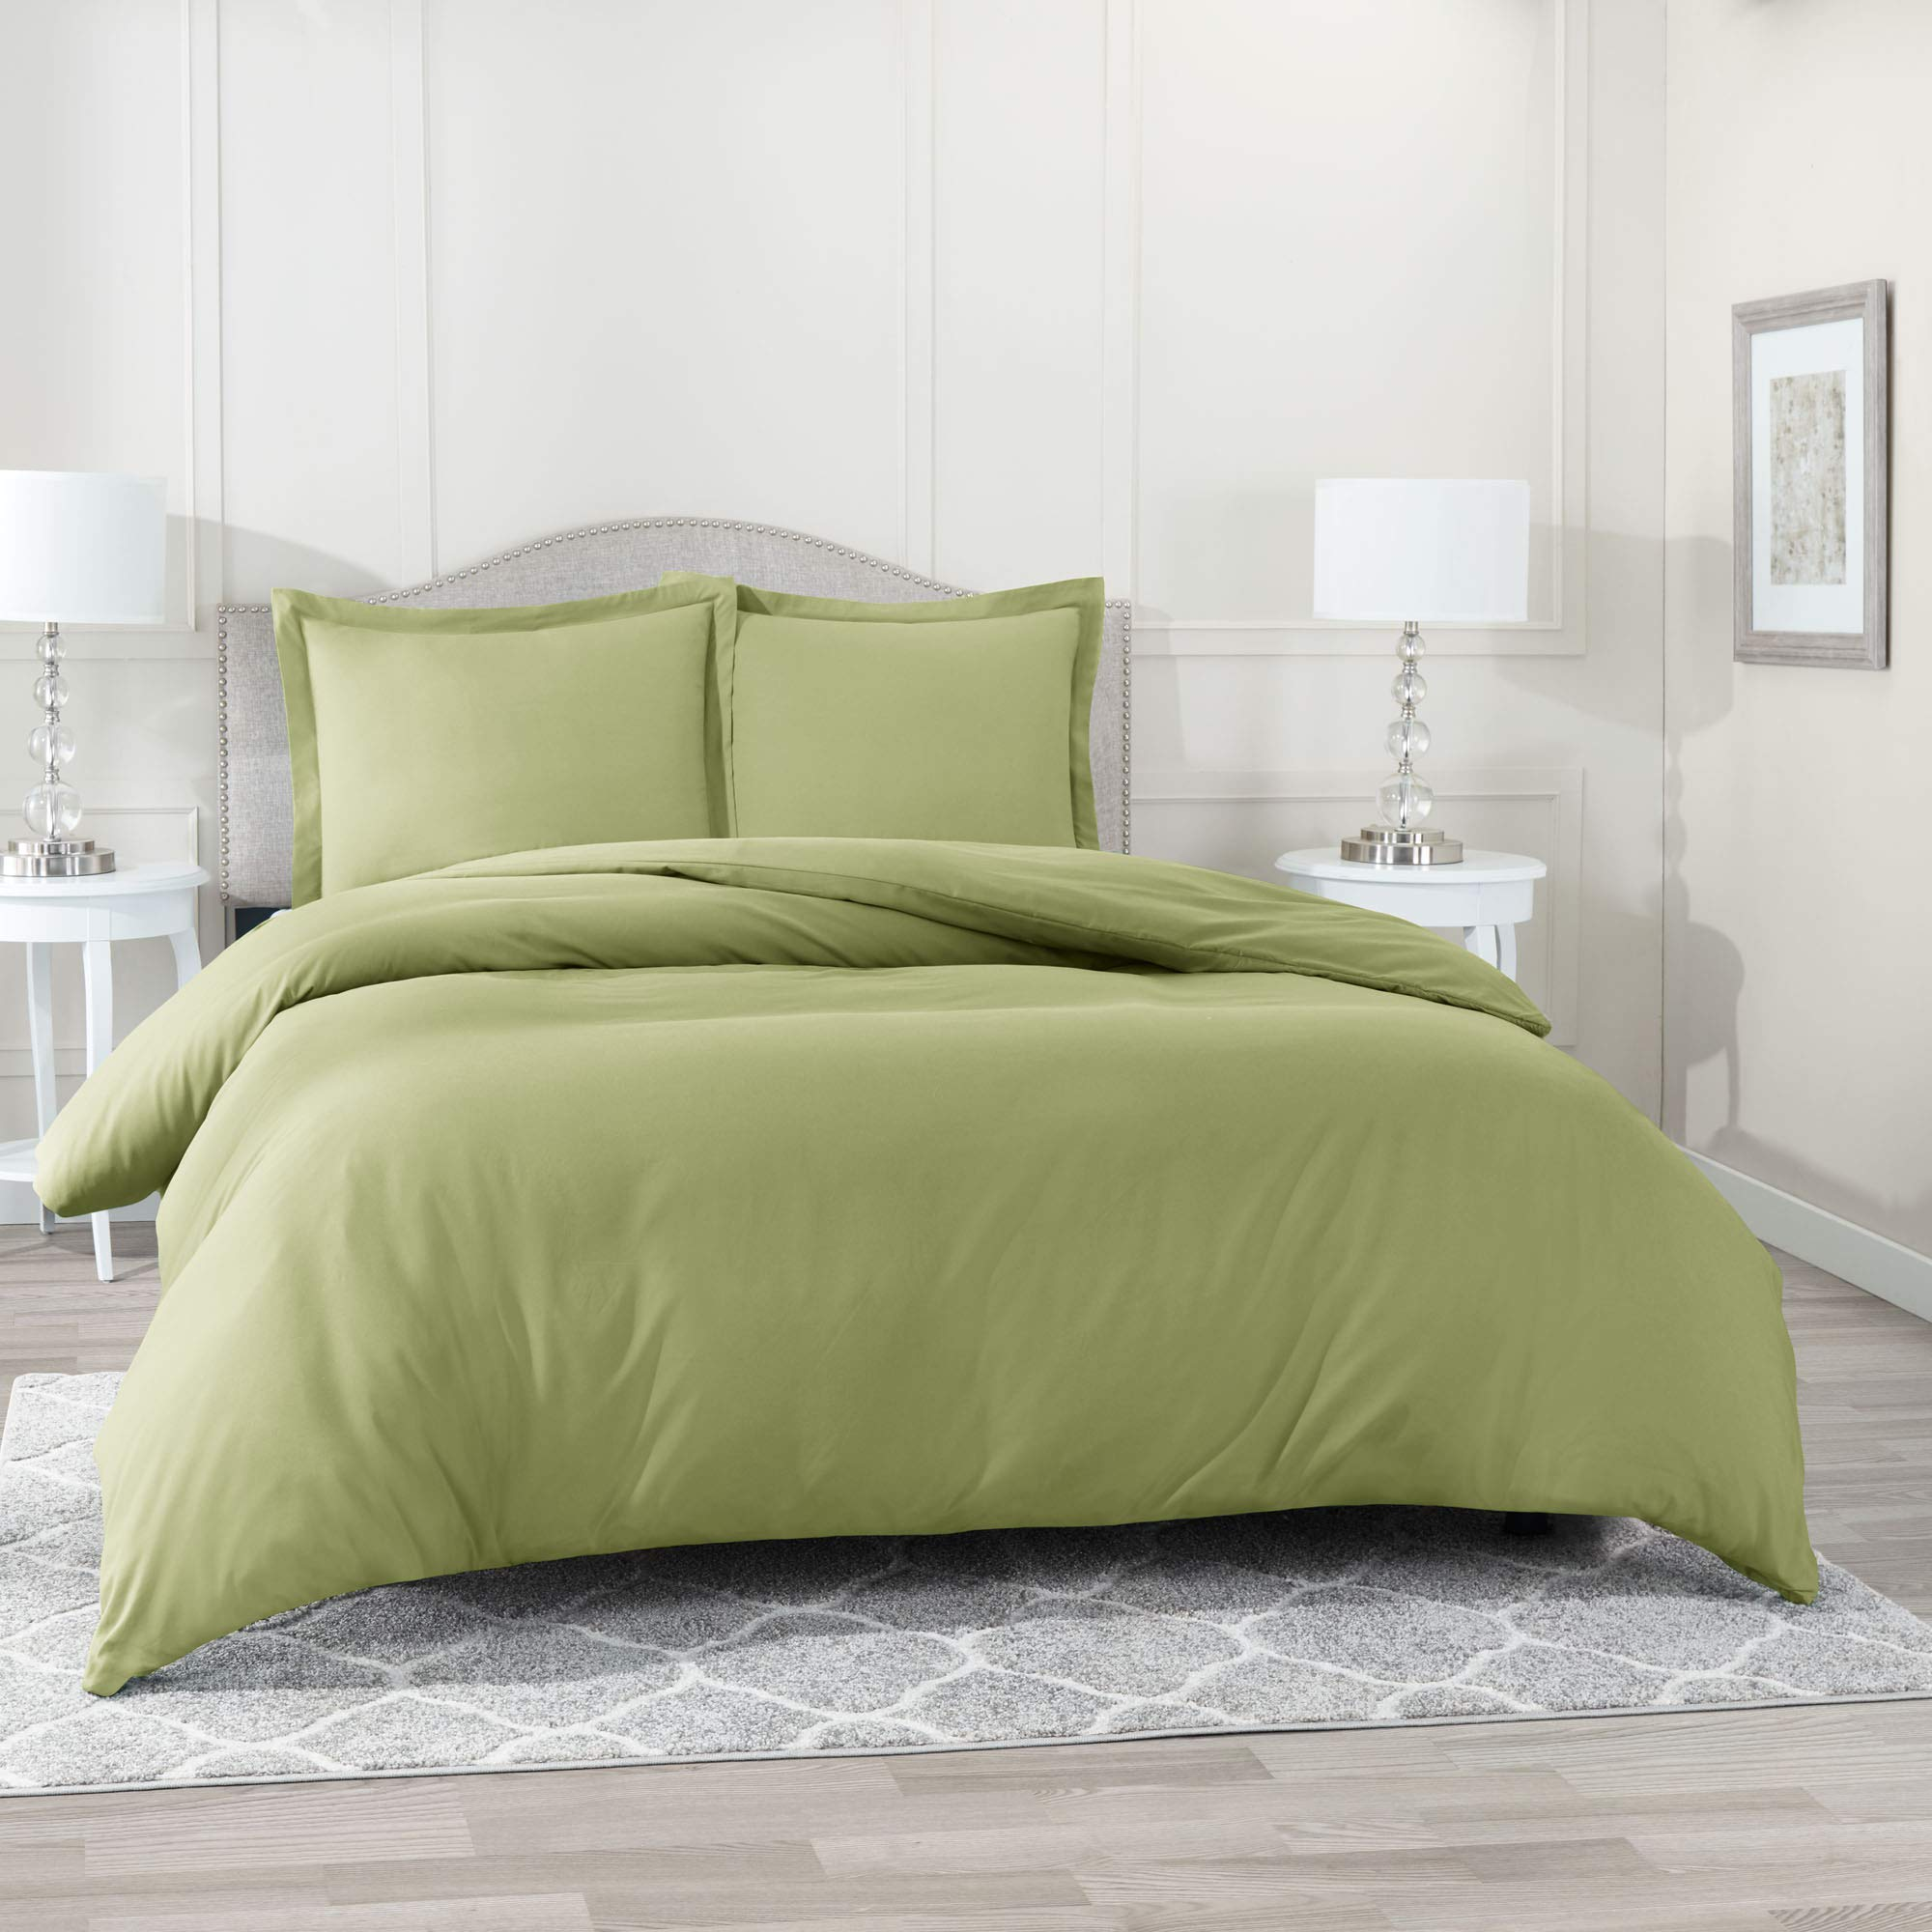 Nestl Bedding Duvet Cover with Fitted Sheet 4 Piece Set - Soft Double Brushed Microfiber Hotel Collection - Comforter Cover with Button Closure, Fitted Sheet, 2 Pillow Shams, King - Sage